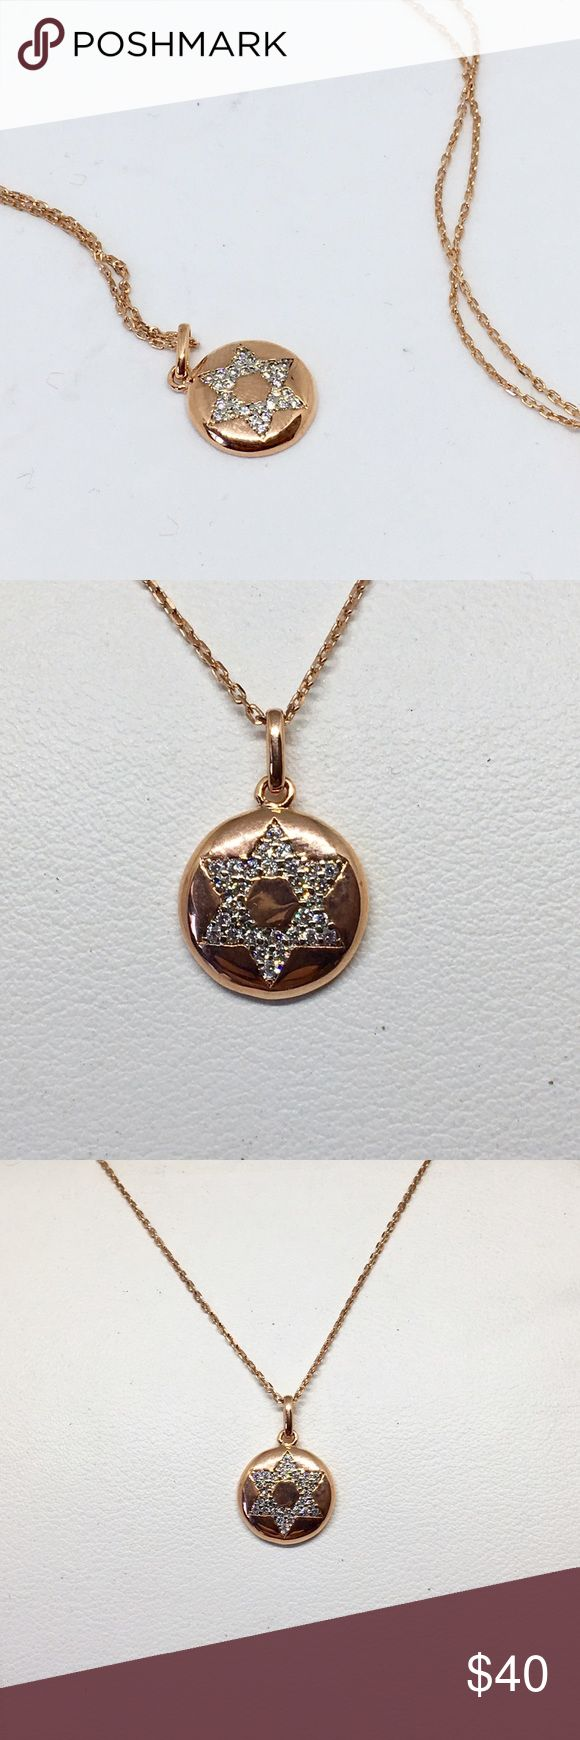 "Rose Vermeil 925 Sterling Star of David Necklace Rose gold vermeil over 925 sterling silver Star of David necklace with 18"" chain. Pendant is a circle with cubic zirconia Star of David. Necklace is a boutique item new with tags and never worn. Reasonable offers welcome! Jewelry Necklaces"